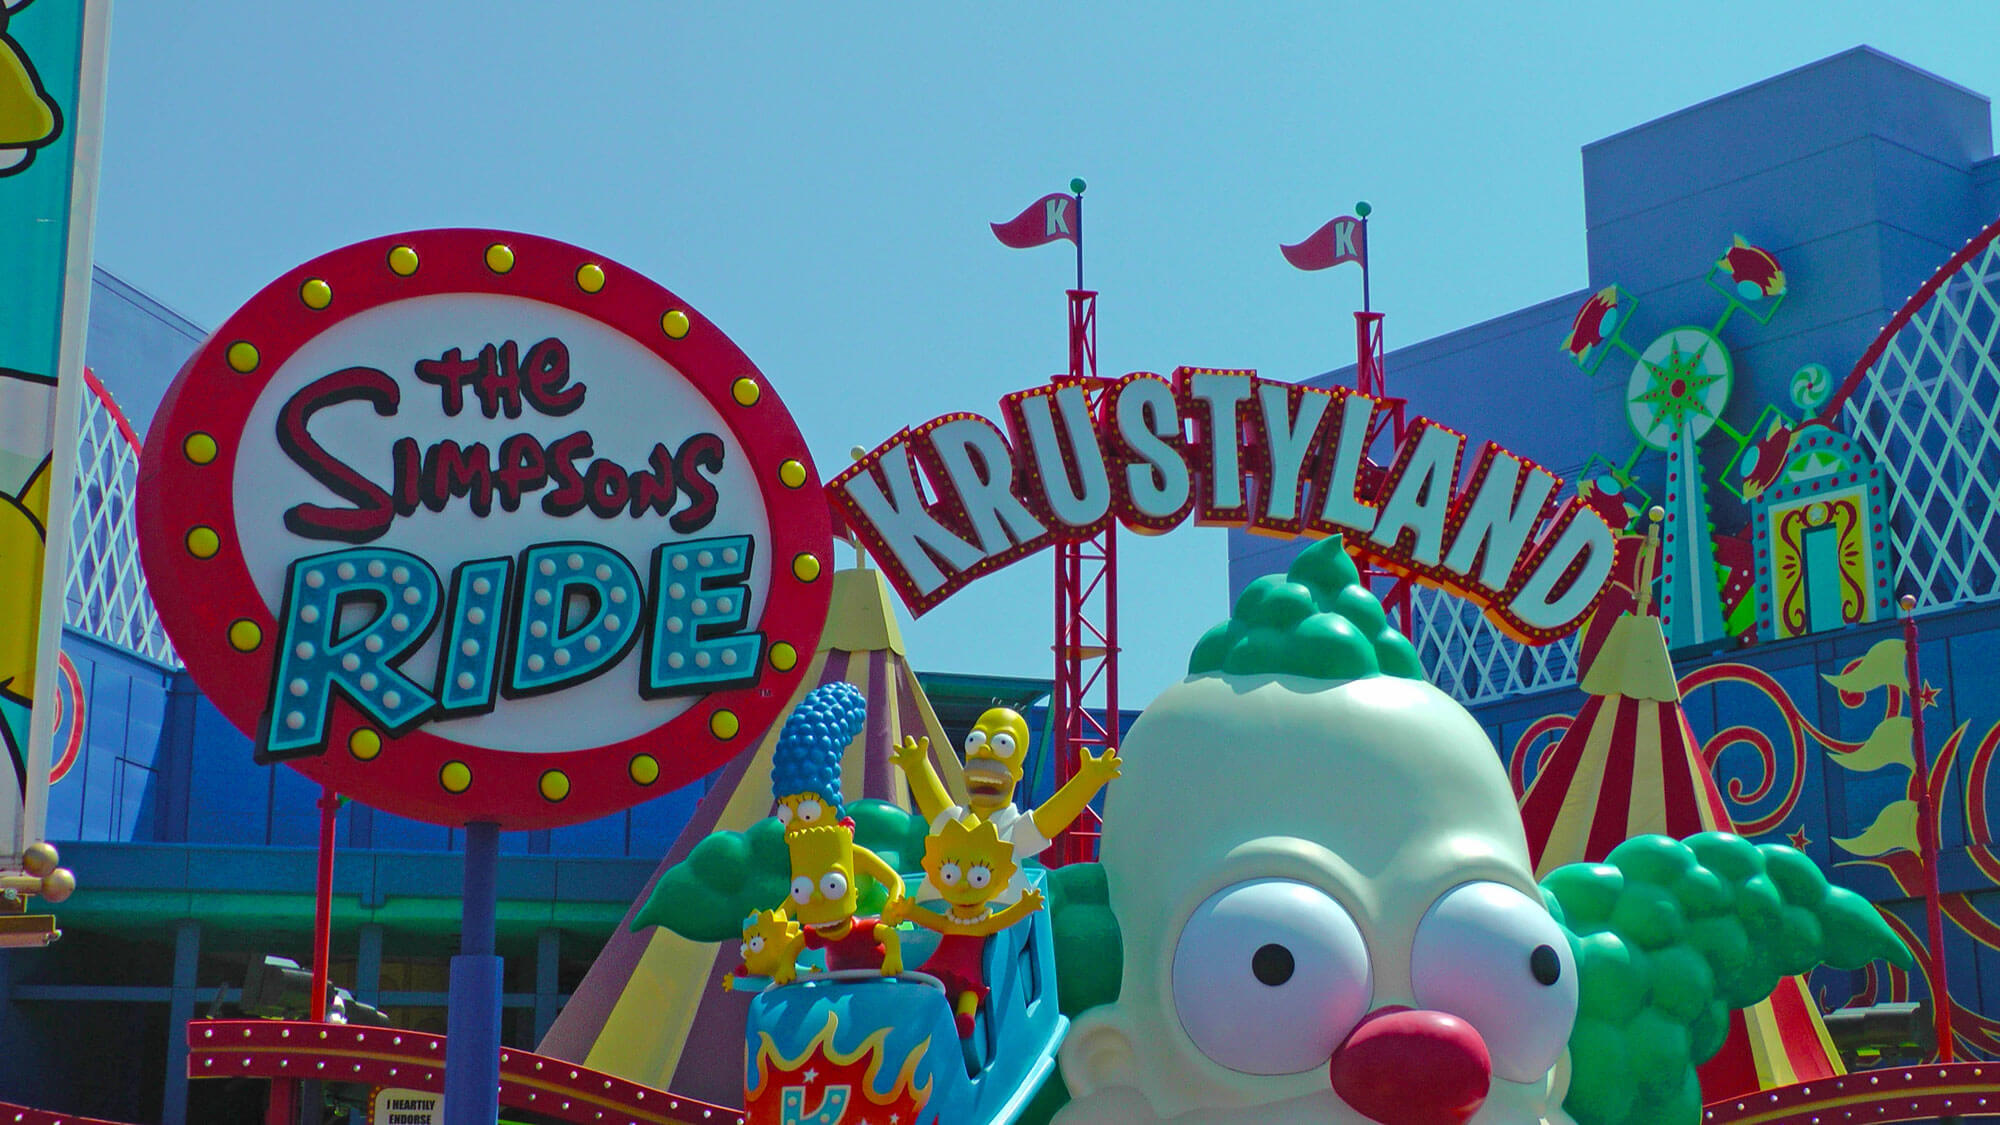 Not-to-miss Universal Studios Hollywood Attractions - The Simpsons Ride